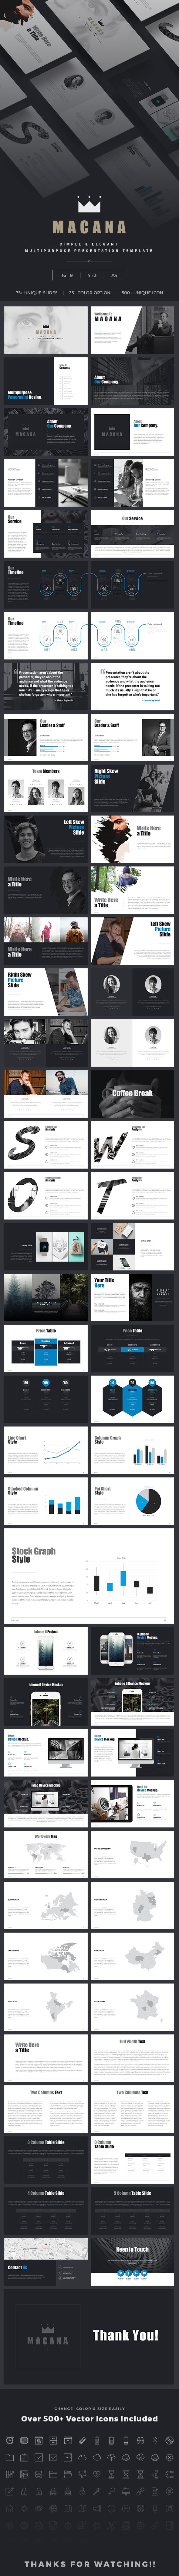 images about powerpoint powerpoint clean powerpoint presentation template best ever simple powerpoint presentation template based on real topics super